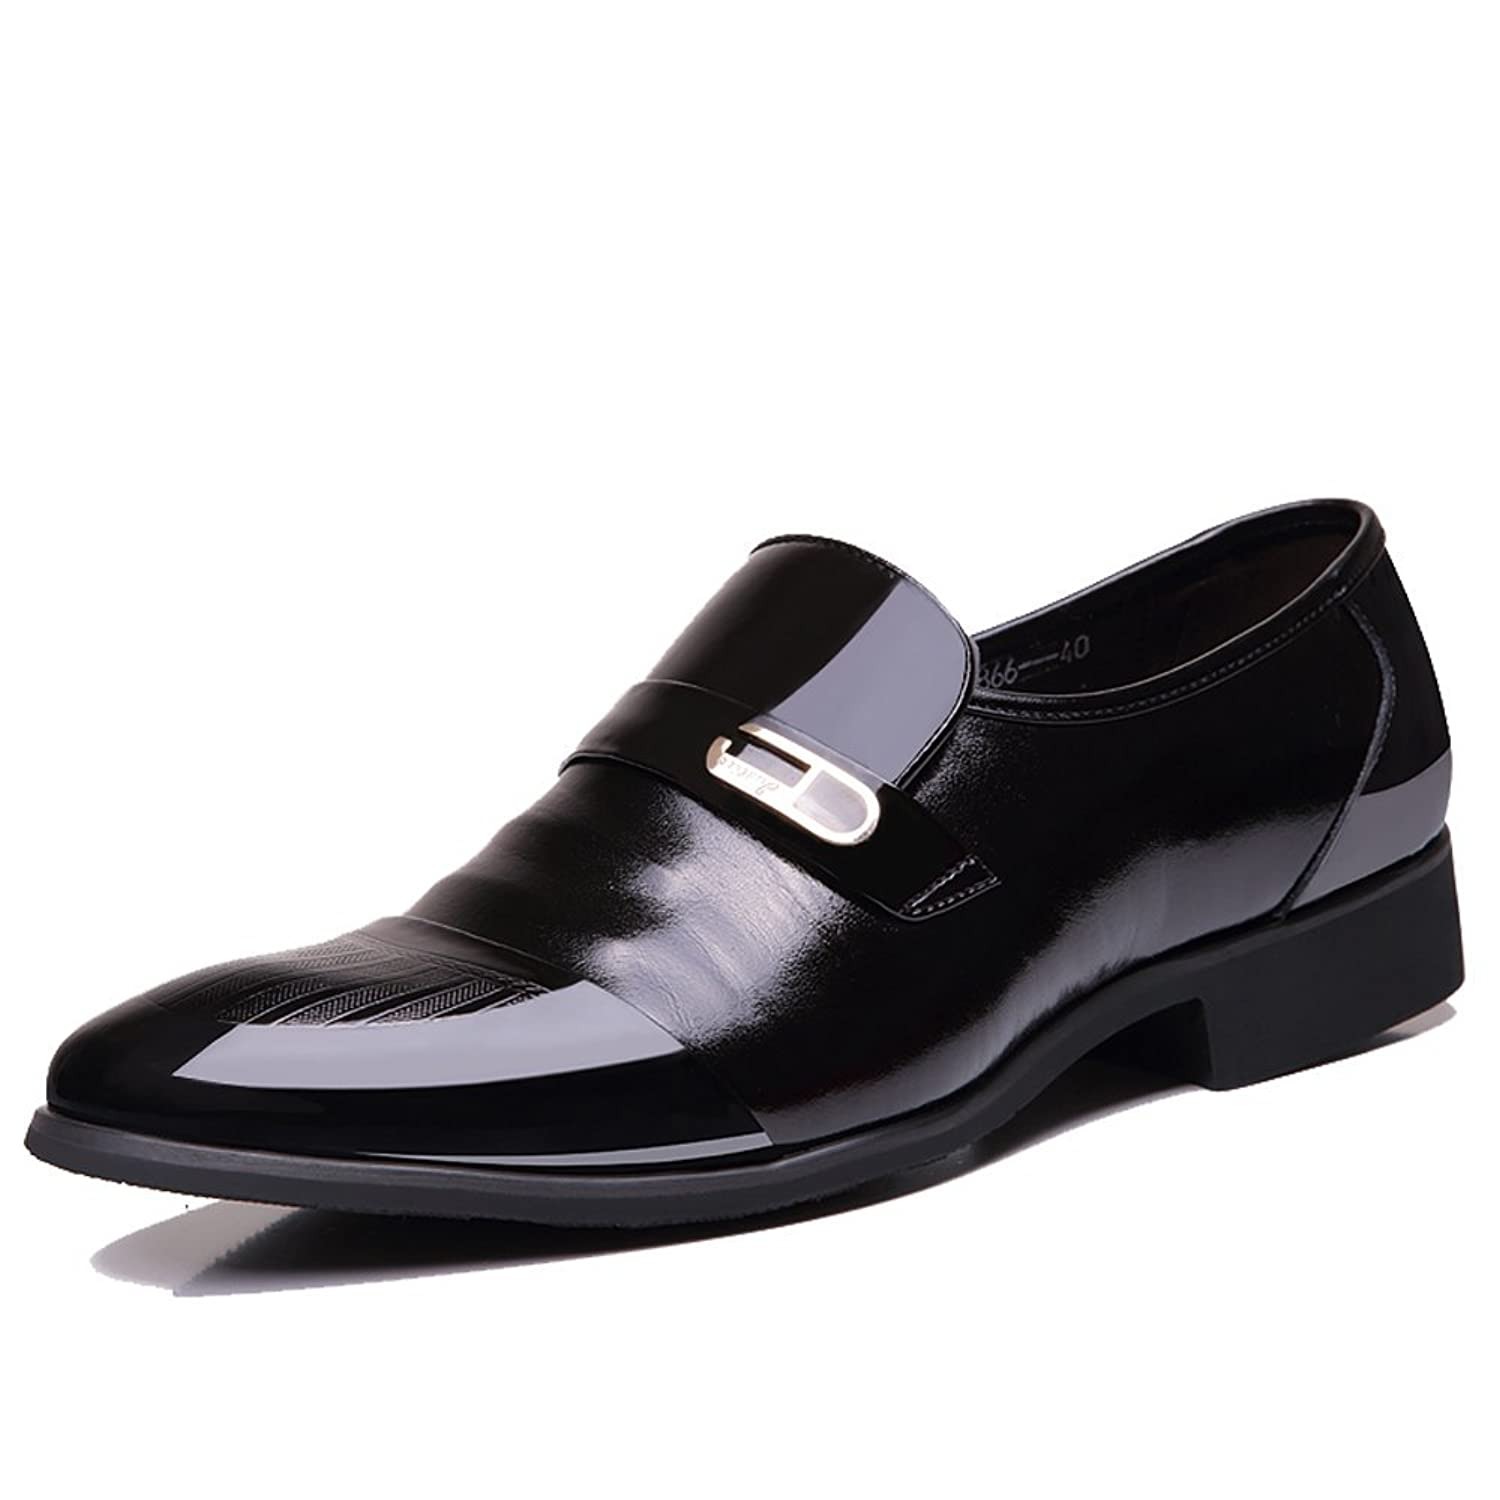 Mens Oxfords | Amazon.com